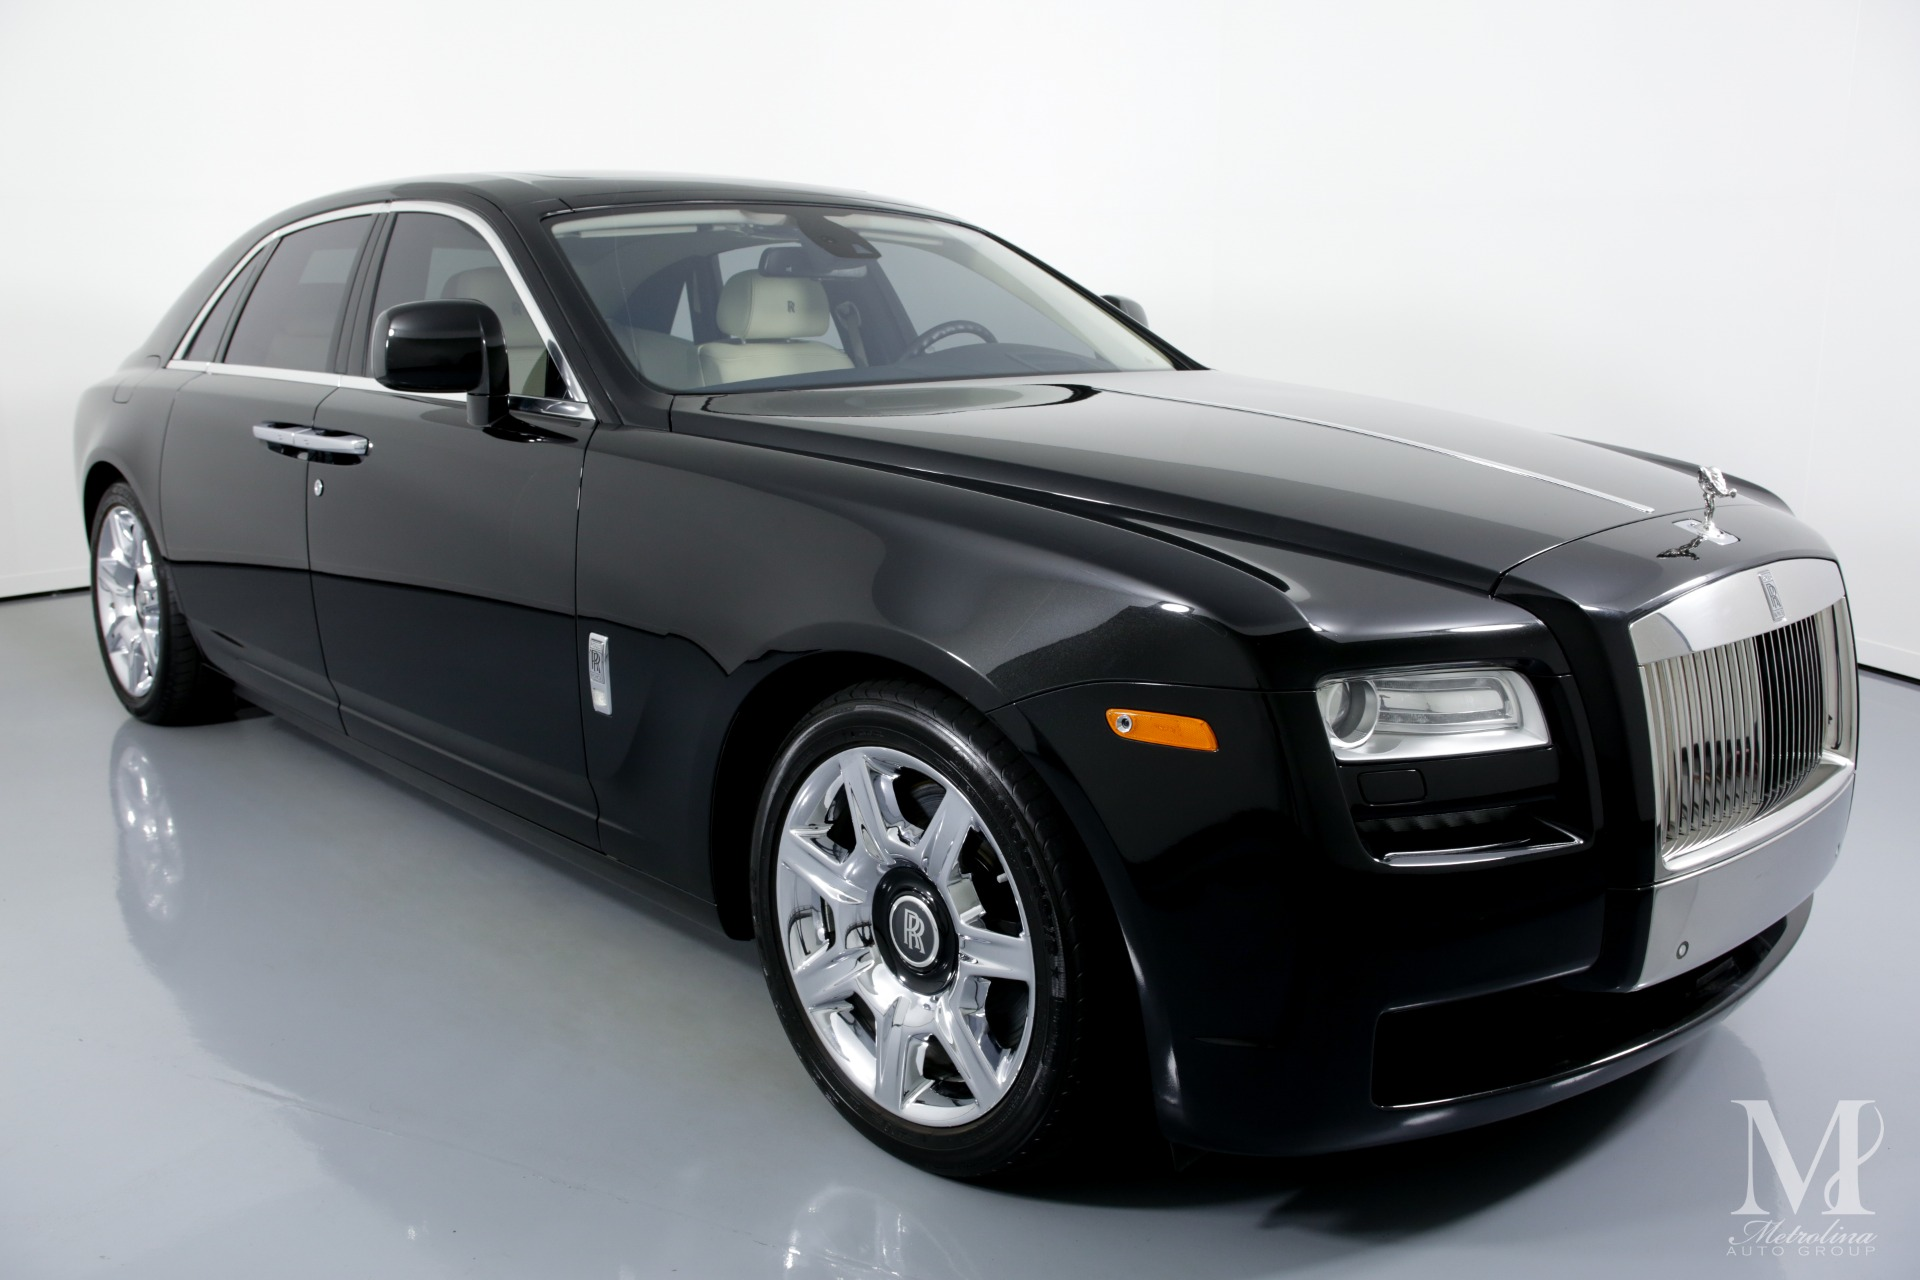 Used 2011 Rolls-Royce Ghost Base 4dr Sedan for sale Sold at Metrolina Auto Group in Charlotte NC 28217 - 2